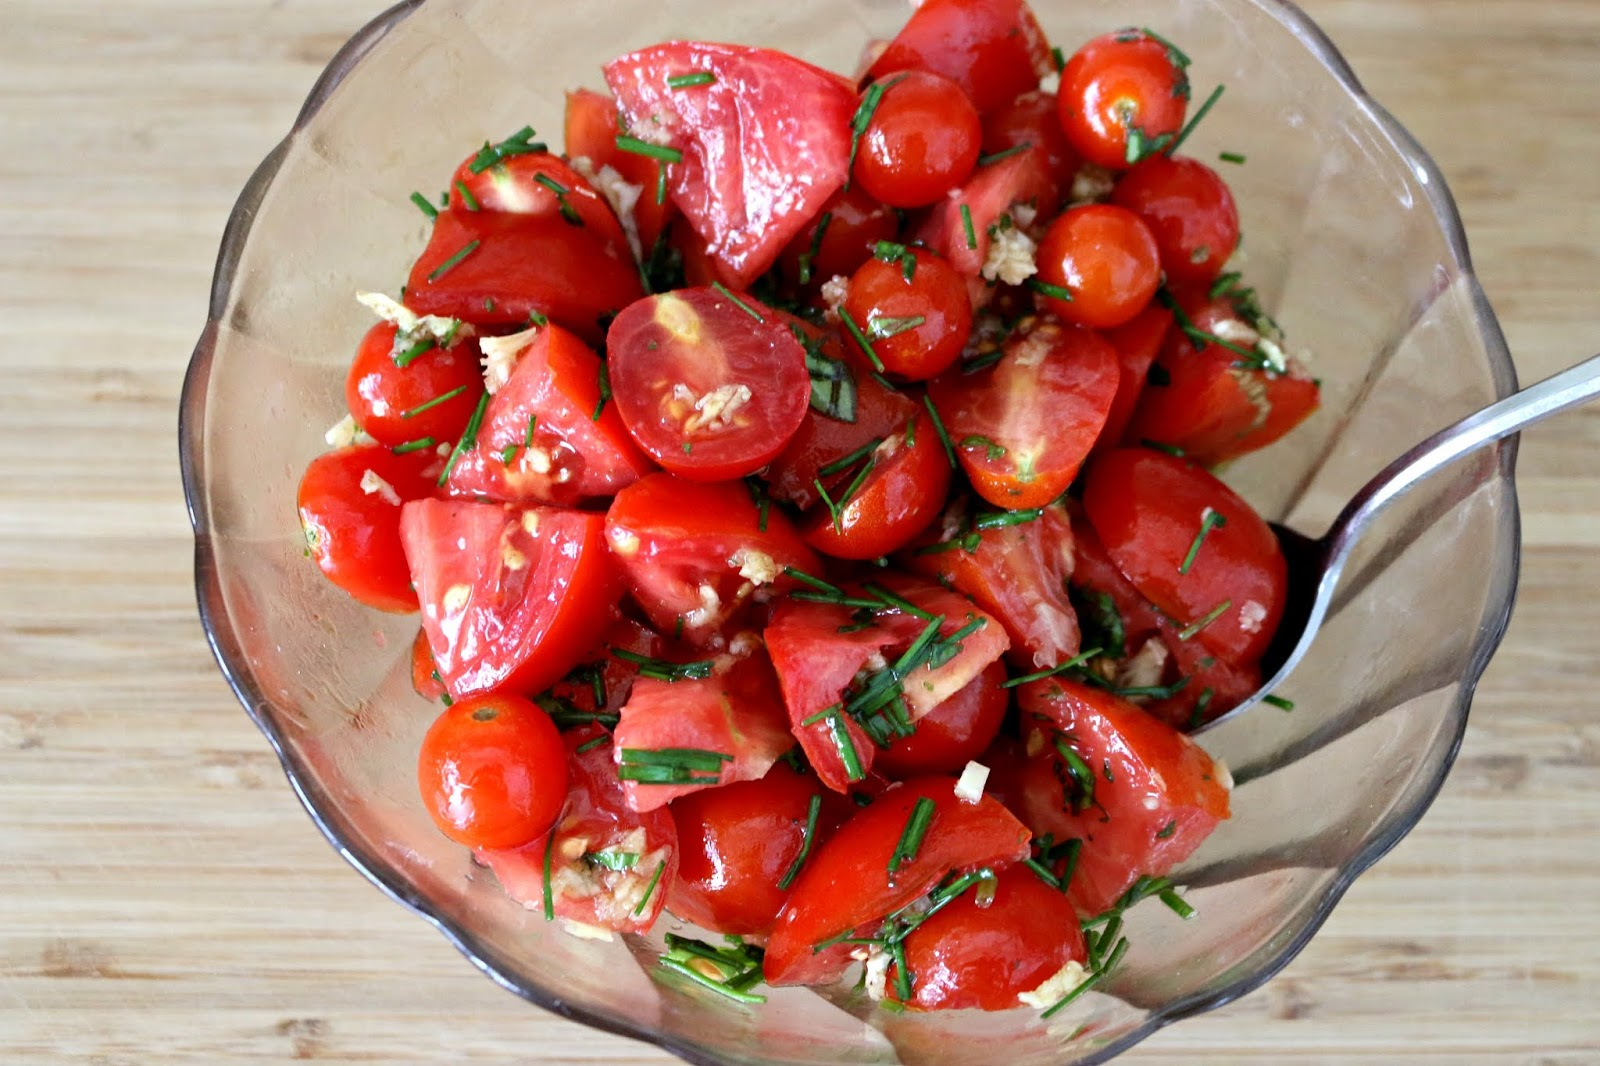 Vegan Garden Fresh Tomato Basil Salad Recipe